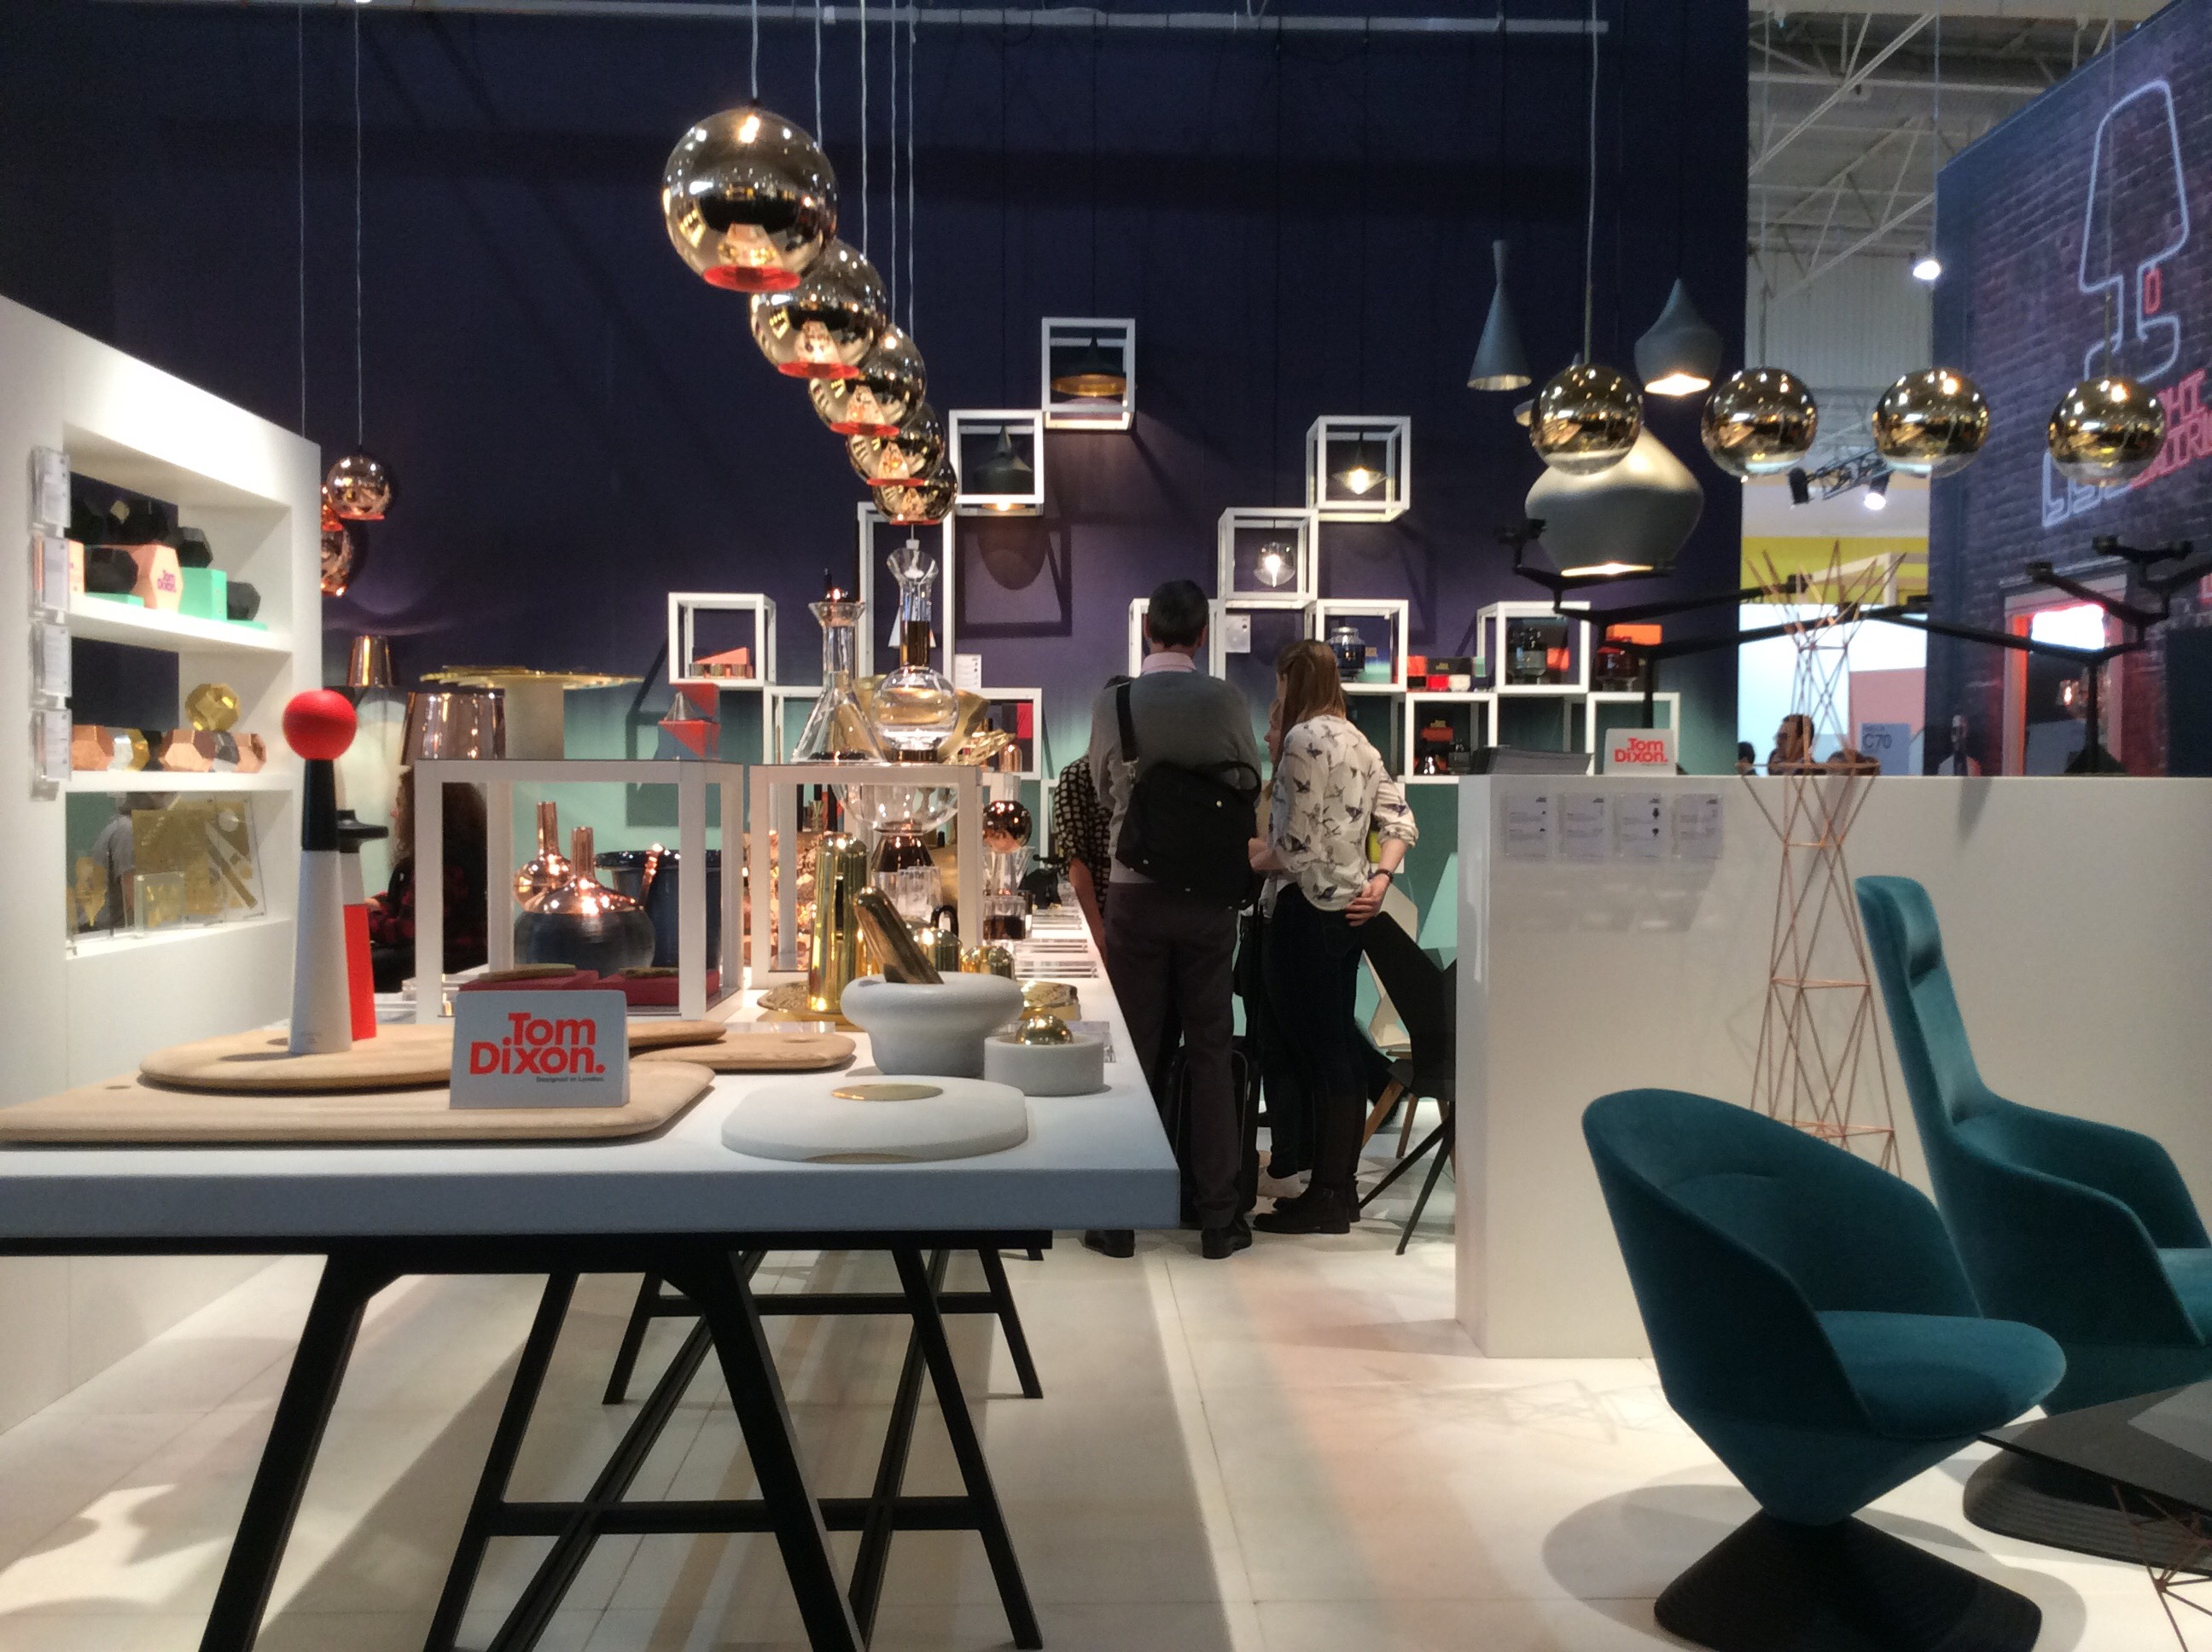 Are You Ready for Maison et Objet 2019 - maison et objet Are You Ready for Maison et Objet 2019? Are You Ready for Maison et Objet 2019